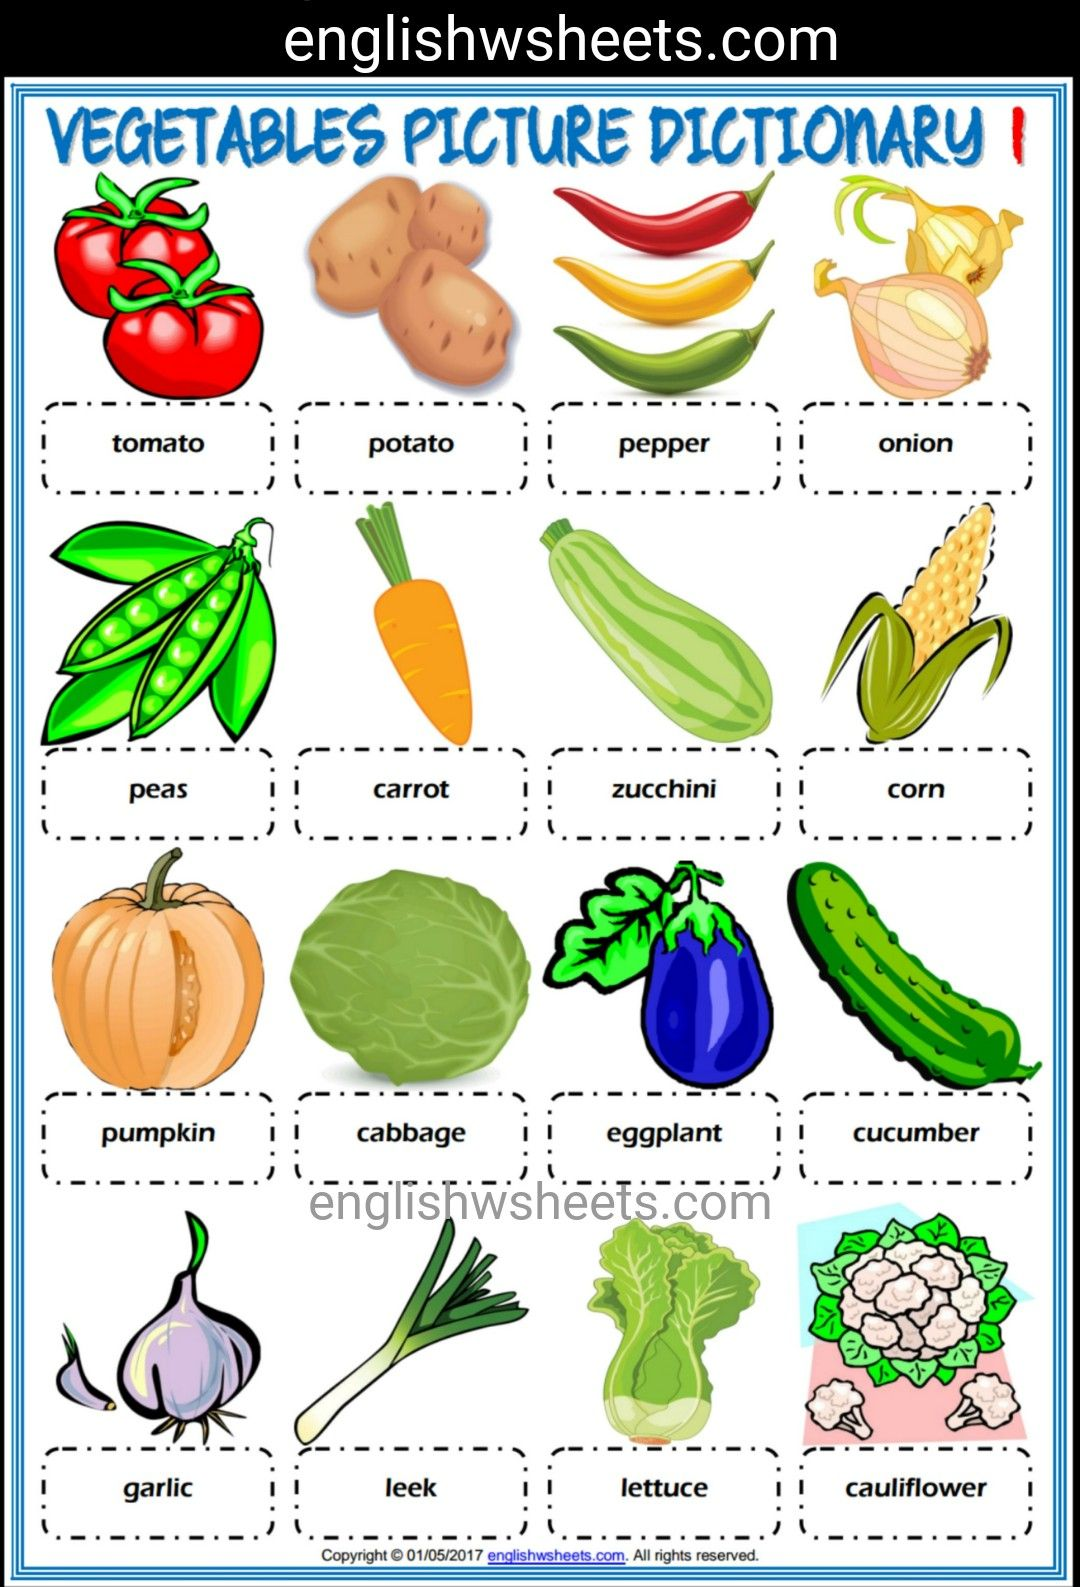 Vegetables Esl Printable Picture Dictionaries For Kids 2